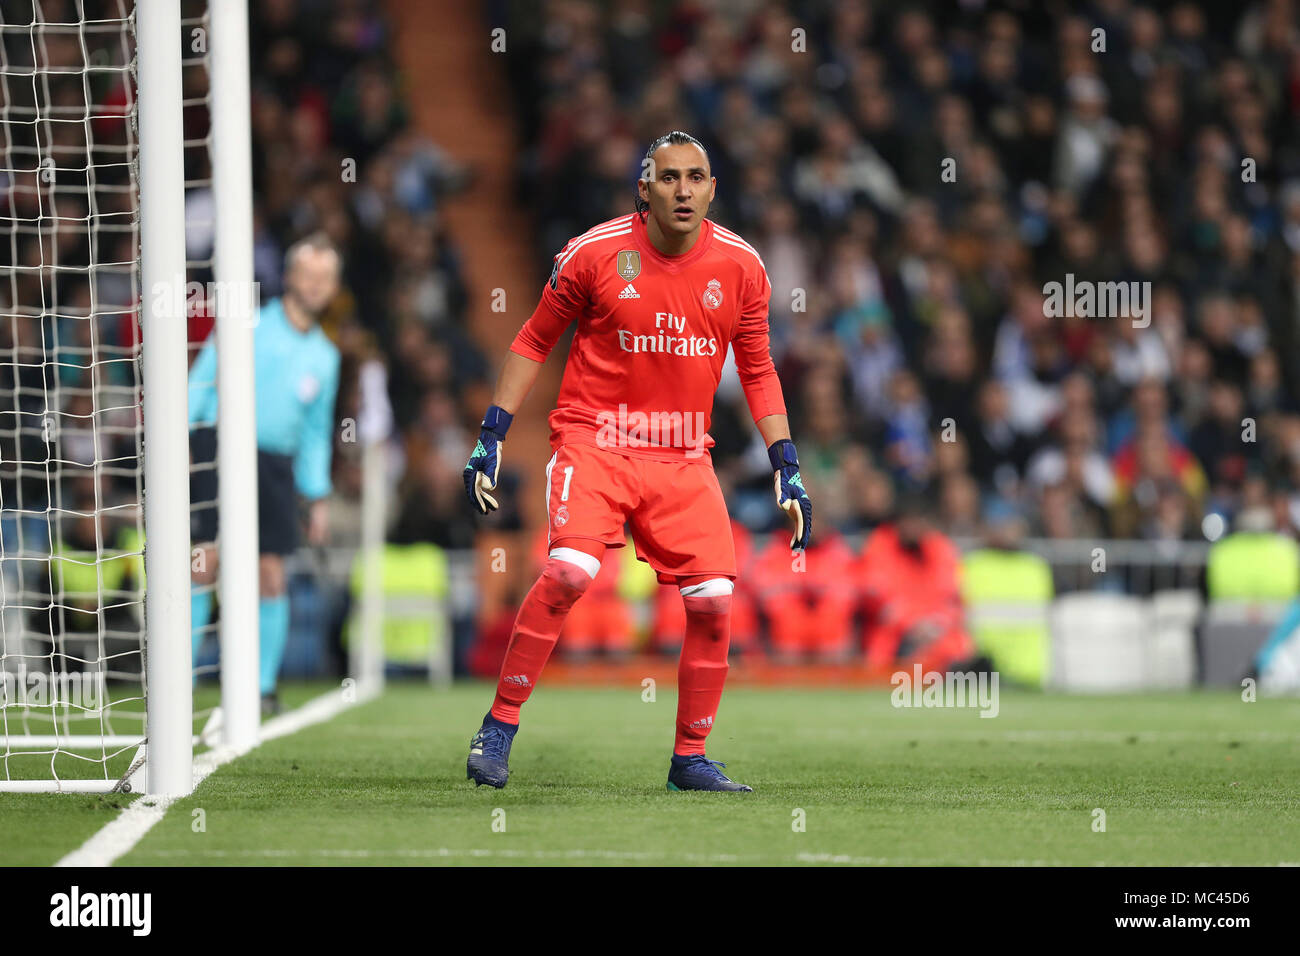 Madrid, Spain. 11th Apr, 2018. KEYLOR NAVAS of Real Madrid during the UEFA Champions League, quarter final, 2nd leg football match between Real Madrid CF and Juventus FC on April 11, 2018 at Santiago Bernabeu stadium in Madrid, Spain Credit: Manuel Blondeau/ZUMA Wire/Alamy Live News - Stock Image